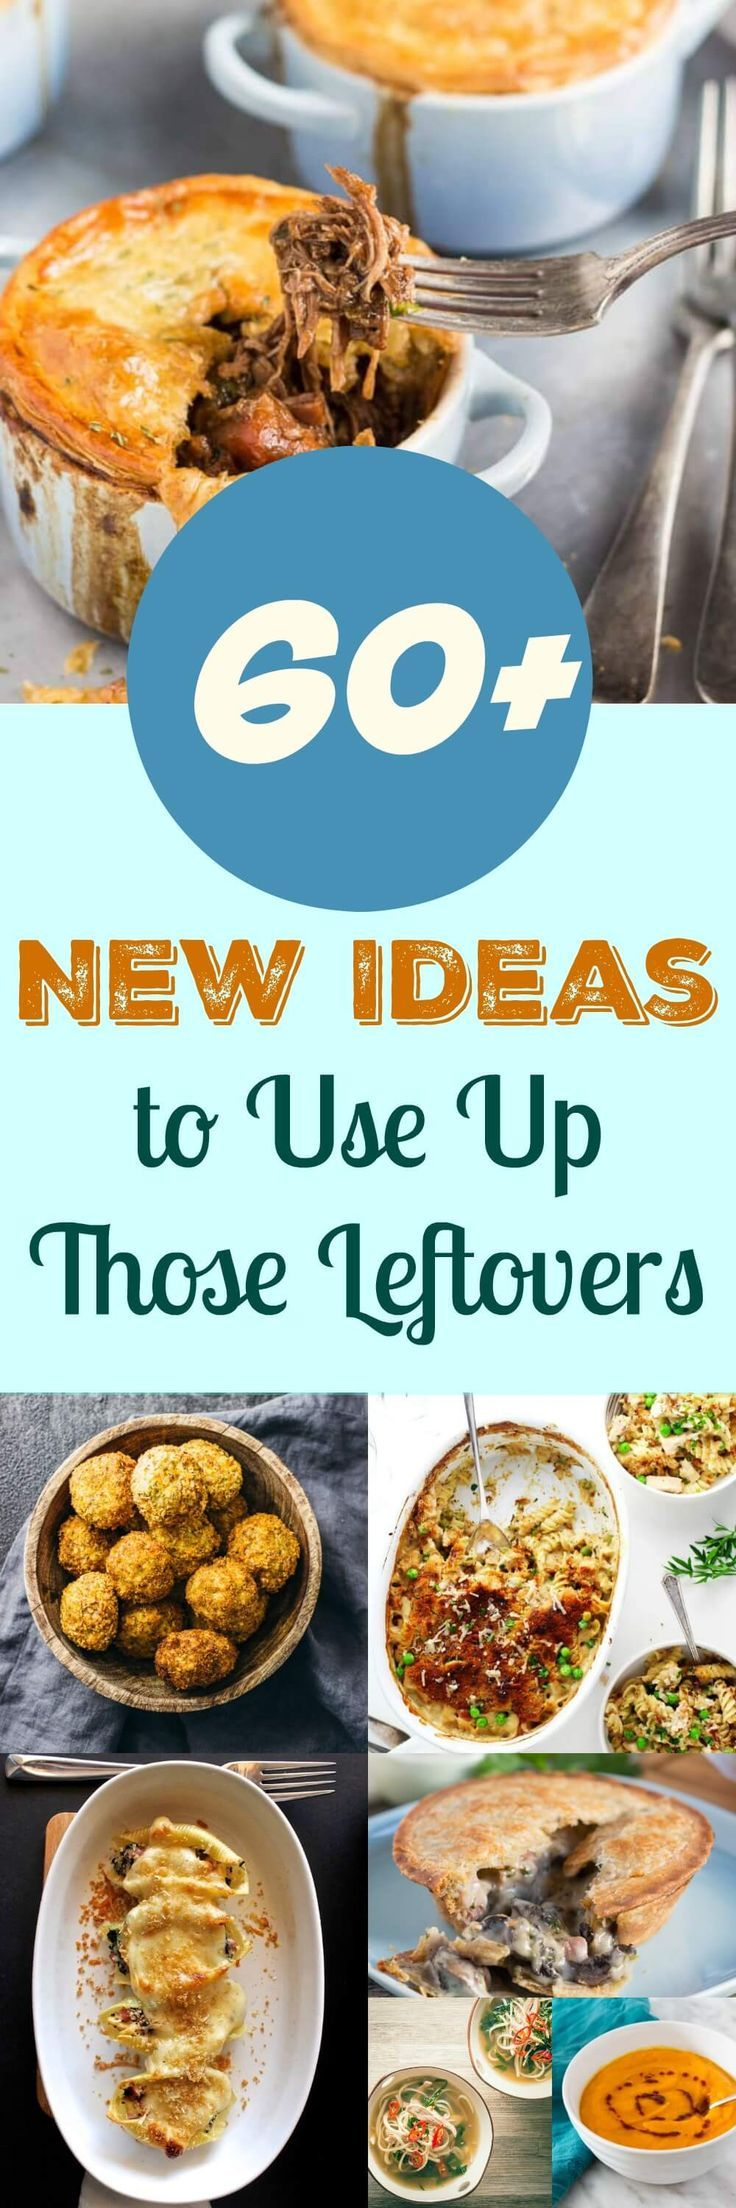 Hate Food Waste? 60+ of the Latest Ideas for Leftover Food. Never know what to do with all your leftover food?  With over 60 of the latest ideas for the most common leftovers, such as leftover chicken, leftover ham and leftover mashed potatoes, you need never throw out food again.